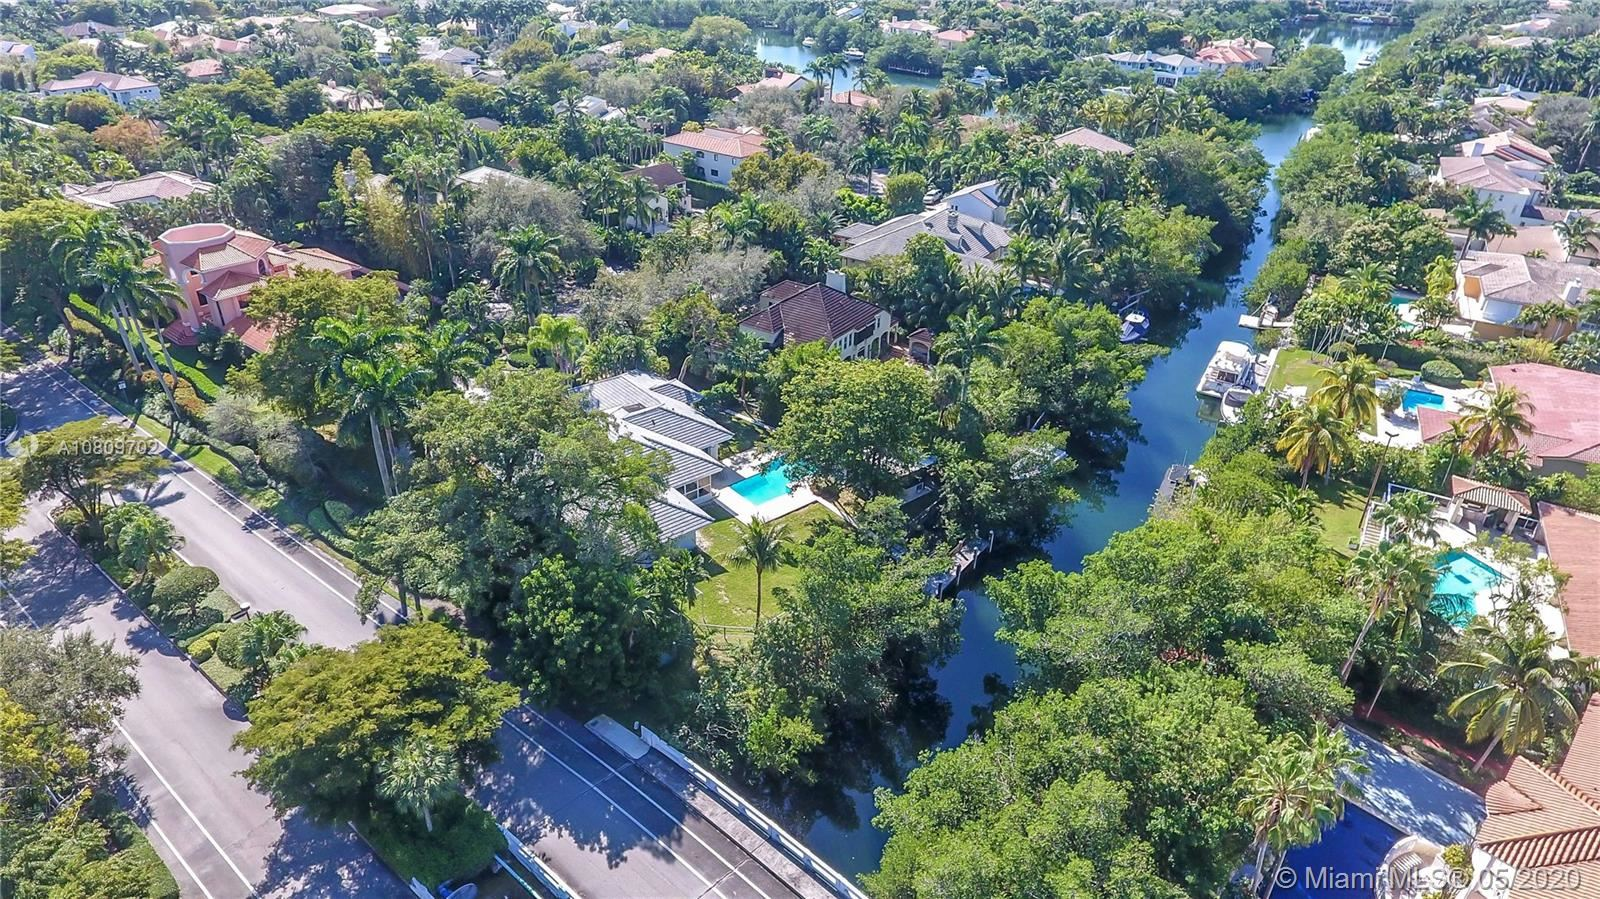 Photo of 7100 W Lago Dr, Coral Gables, FL 33143 (MLS # A10809702)